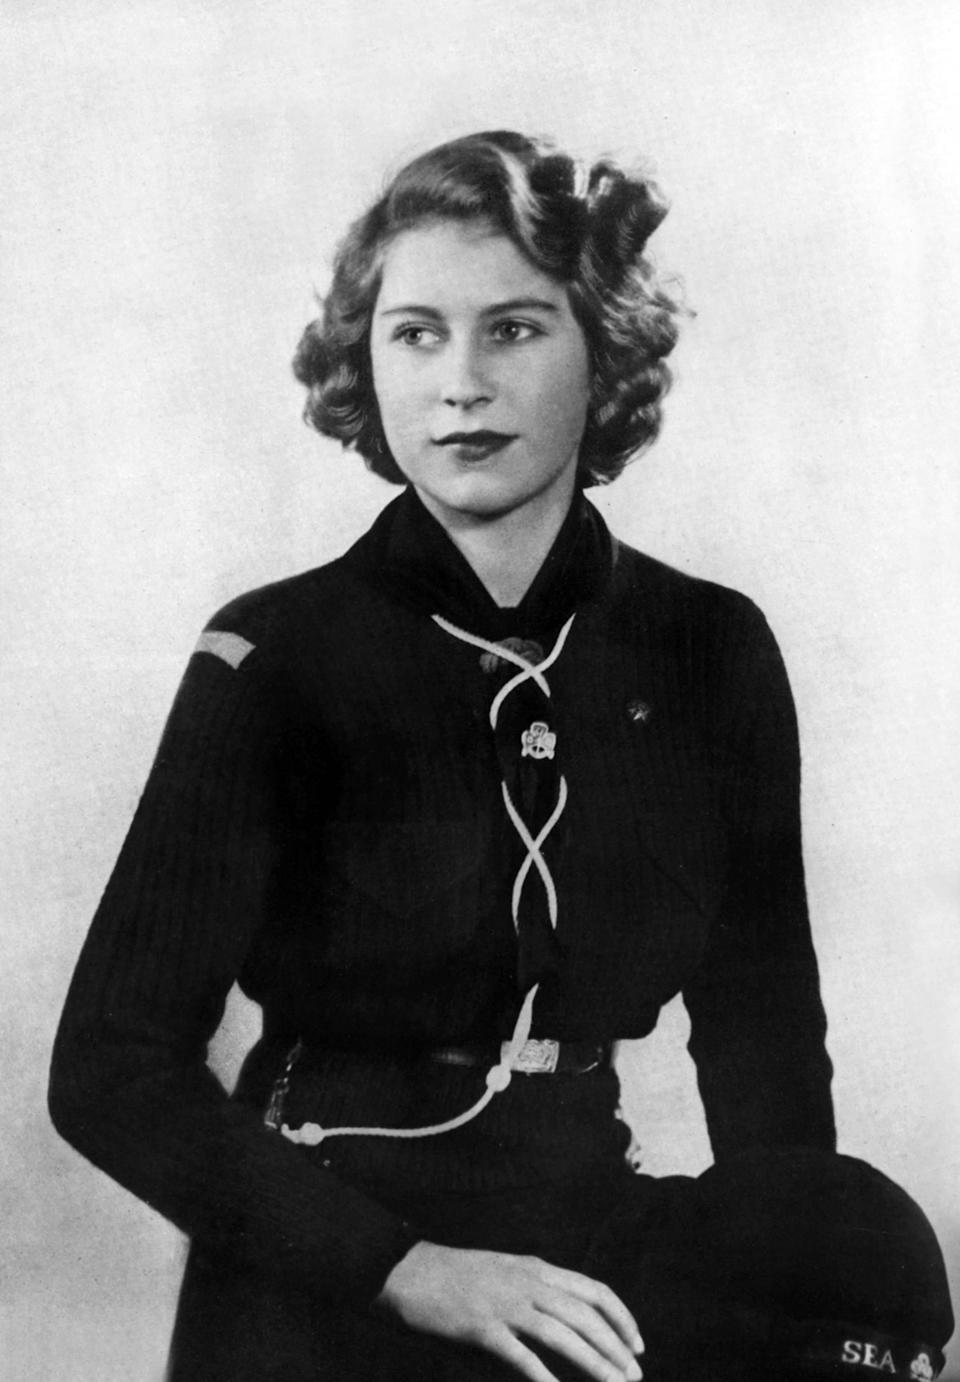 """<div class=""""caption-credit""""> Photo by: Getty Images</div>Princess Elizabeth of England and future Queen Elizabeth II posed in a Buckingham Palace Company of Girl Guides uniform at age 17. <br>"""